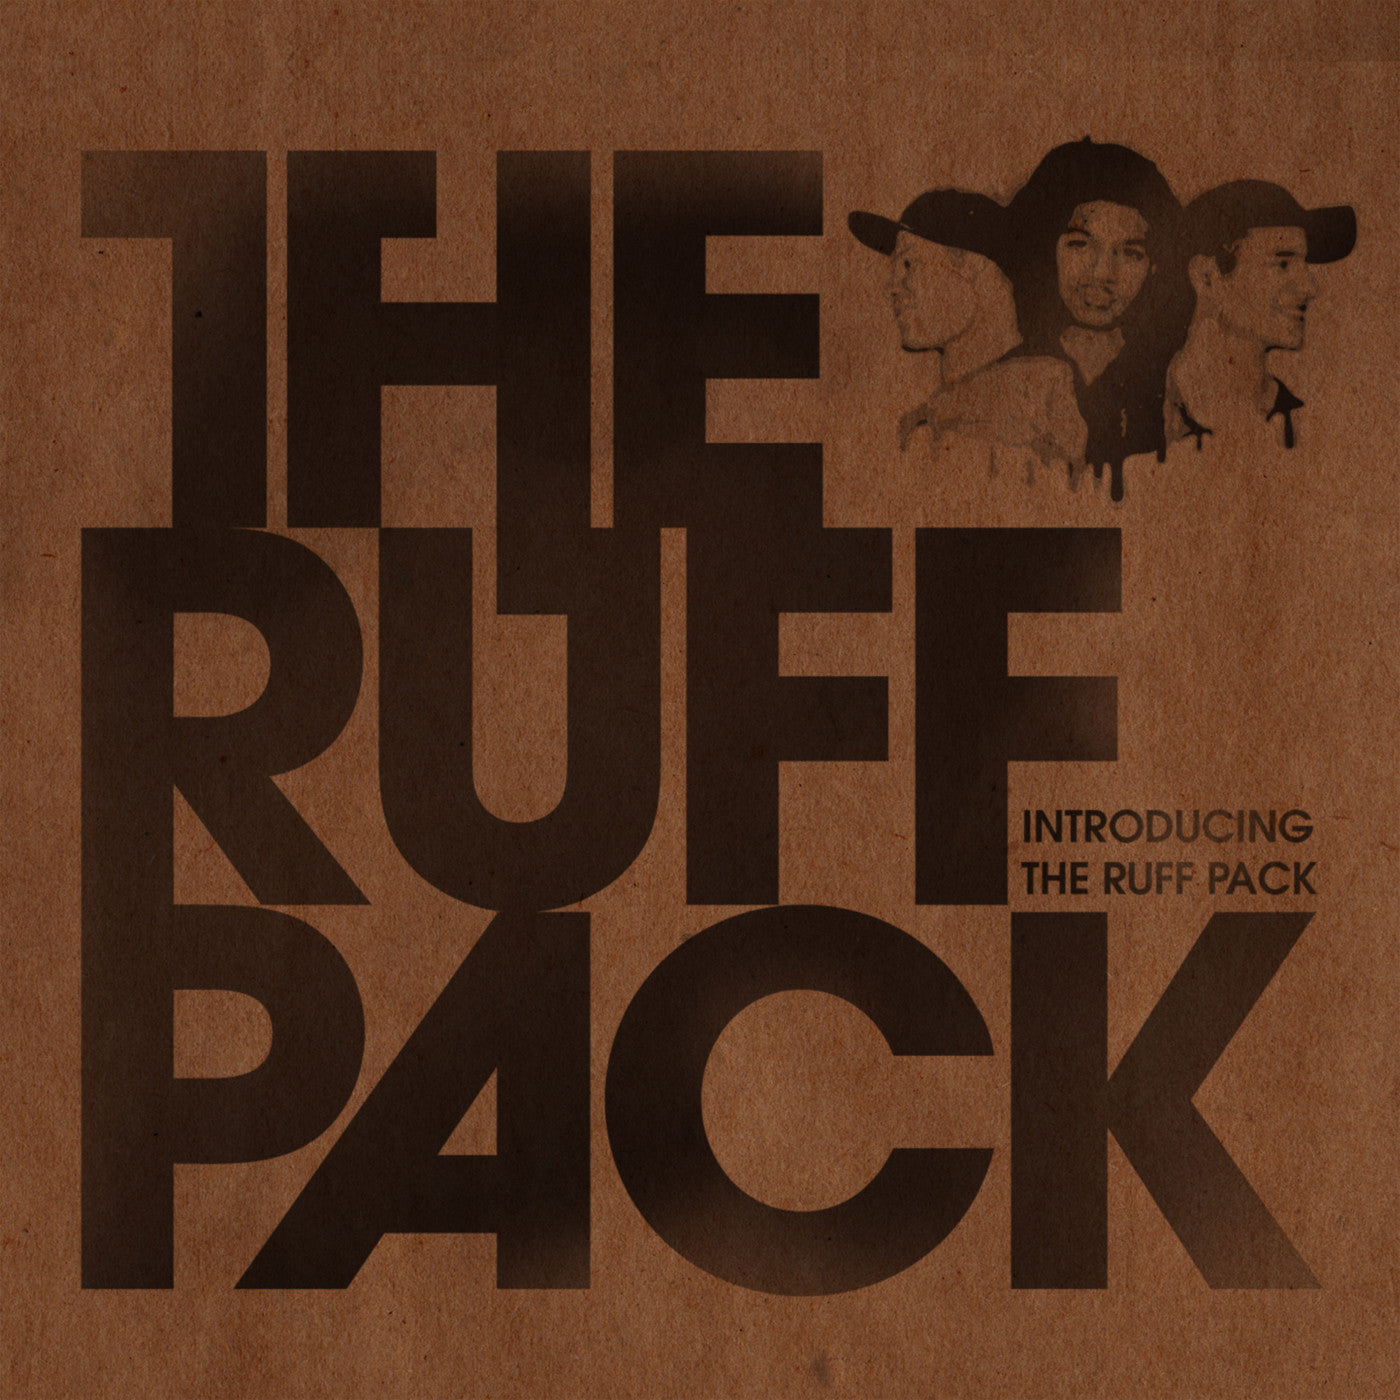 Introducing The Ruff Pack (SWR29)